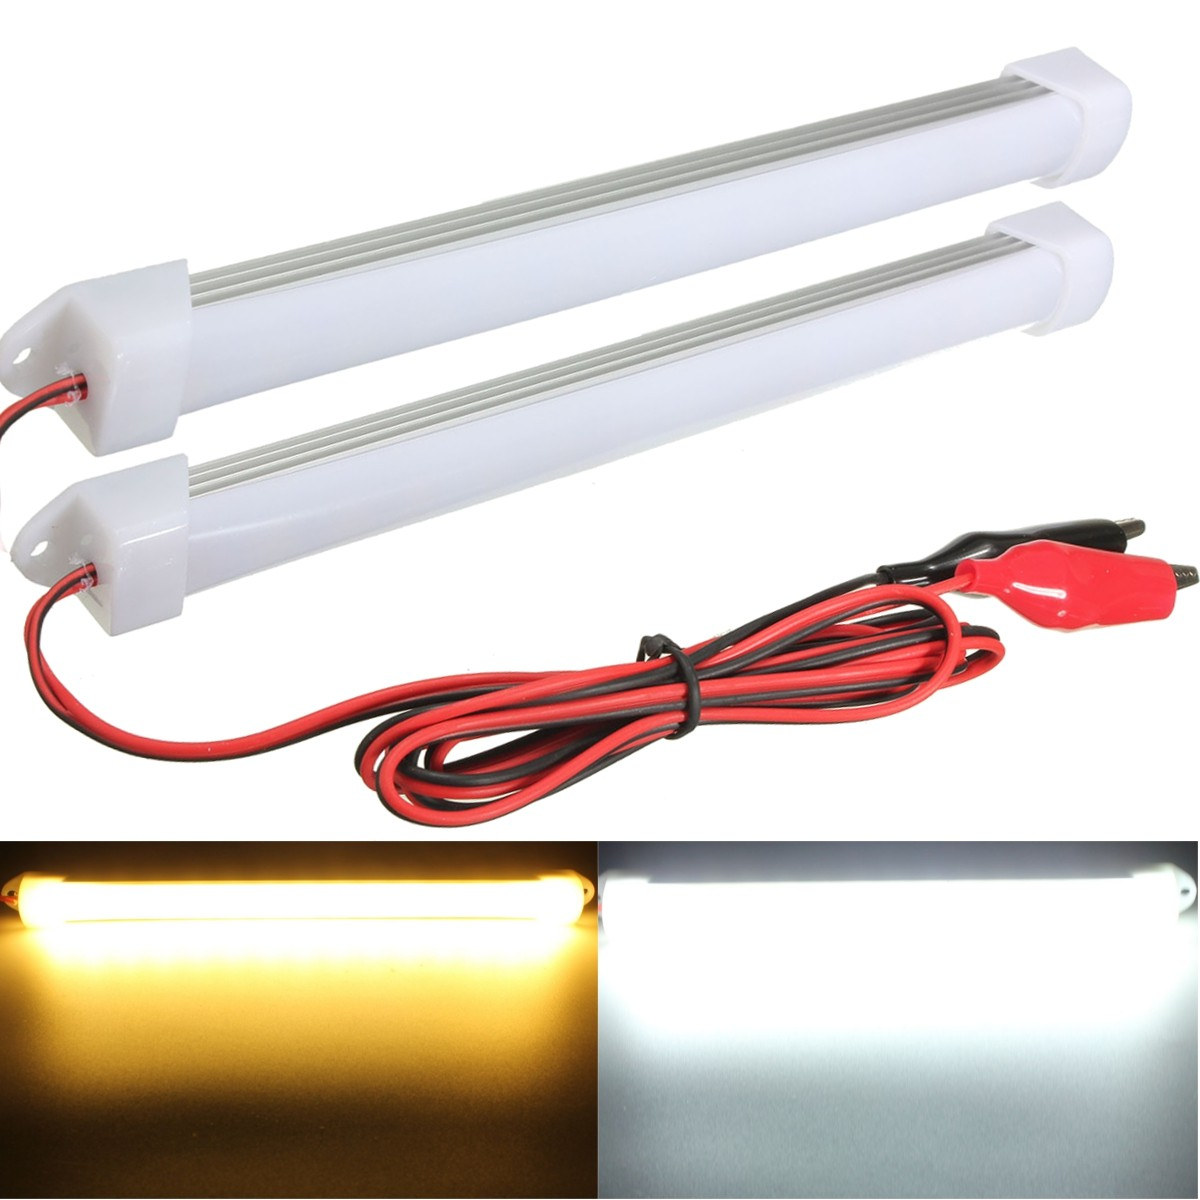 2015 new 2pcs 12v led car interior light bar tube strip. Black Bedroom Furniture Sets. Home Design Ideas